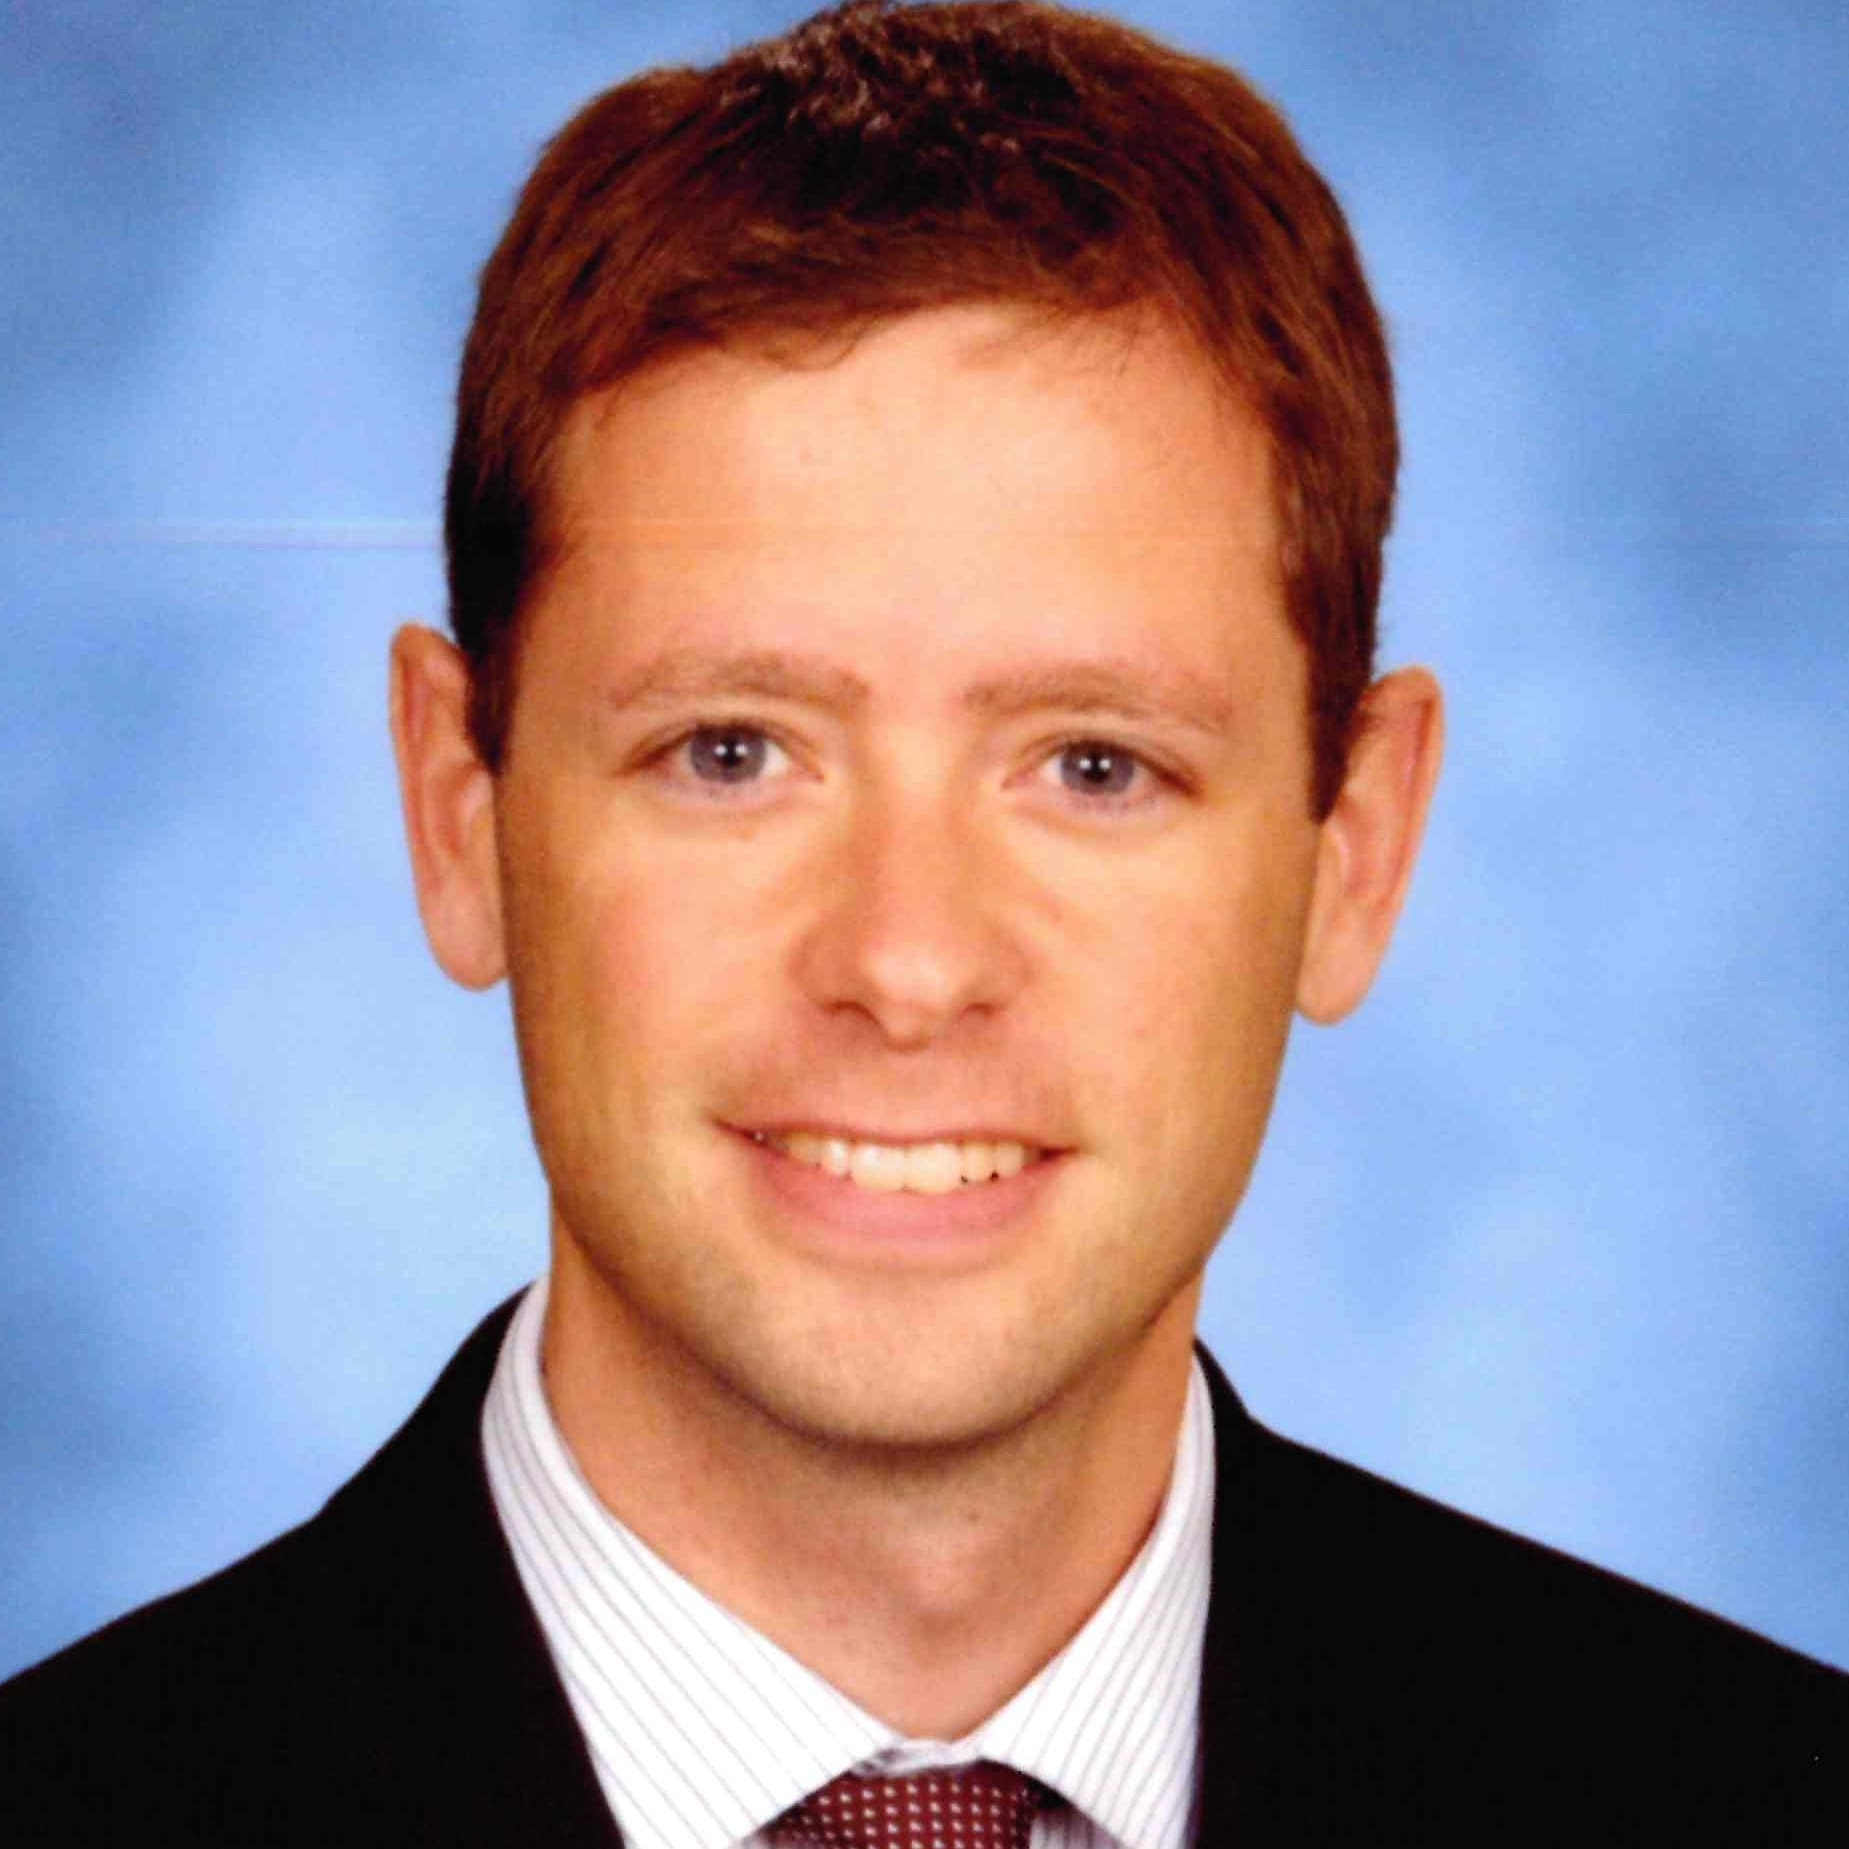 WESTON OUTLAW, Director of Special and Summer Programs, Cranbrook Educational Community